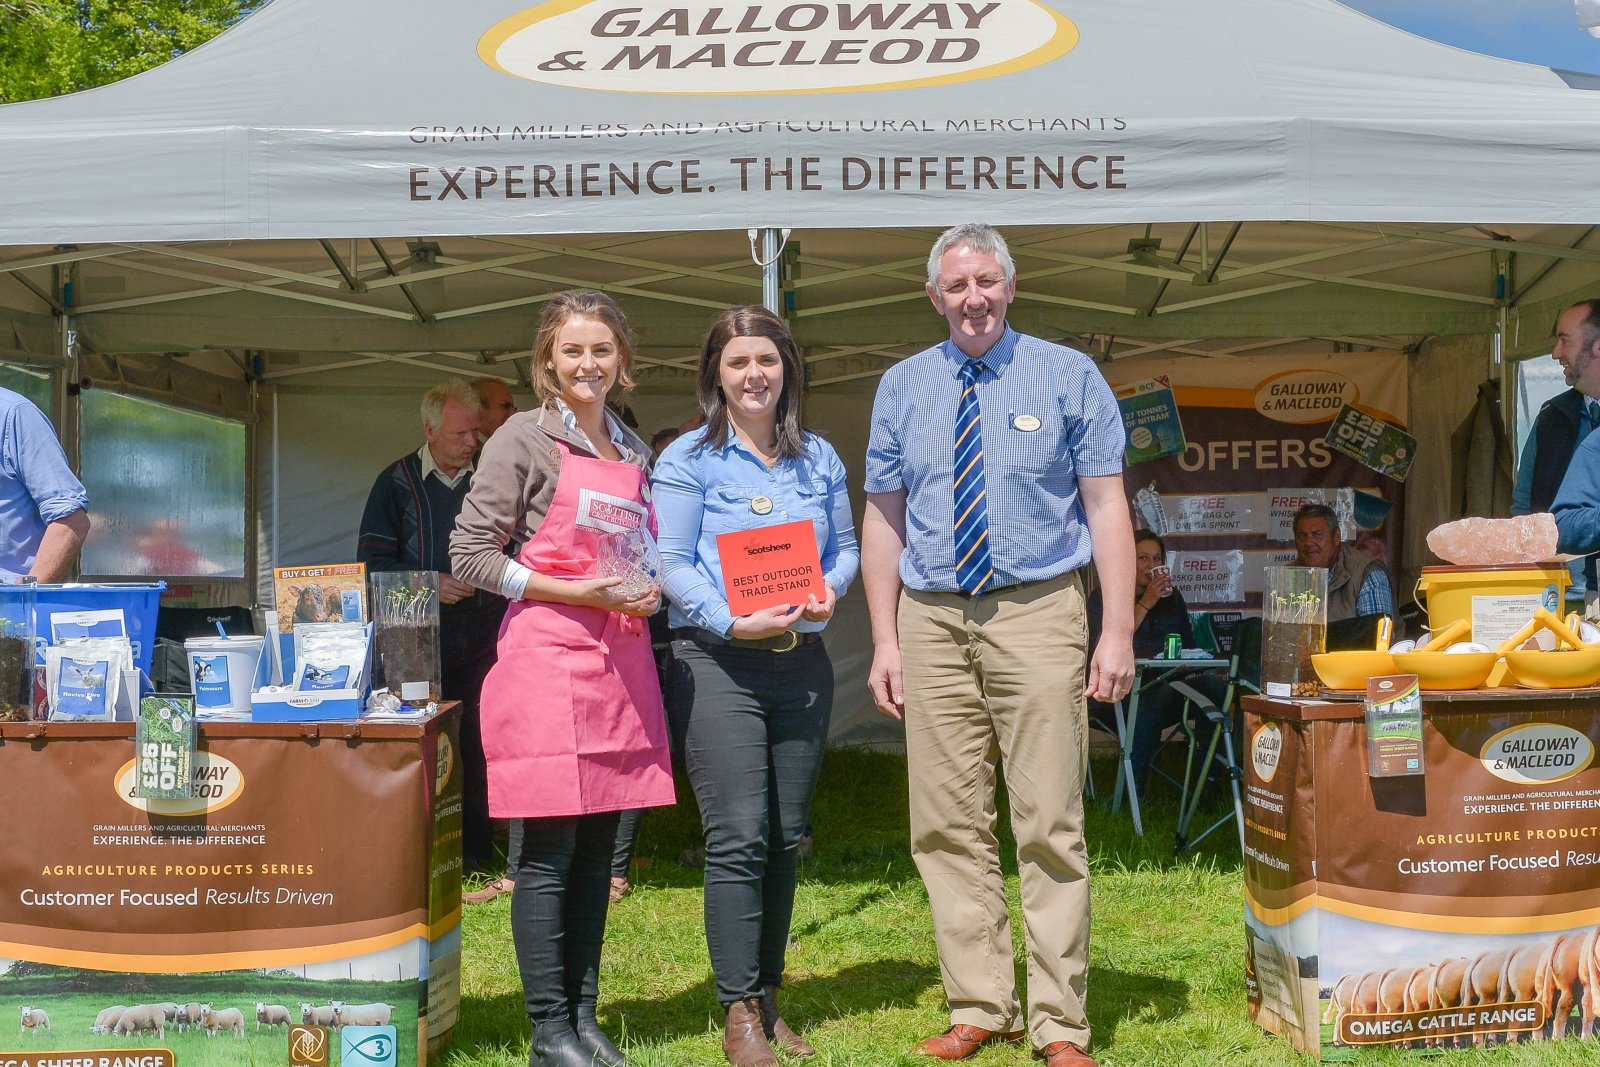 Best Outdoor Trade Stand winner, Galloway & MacLeod.